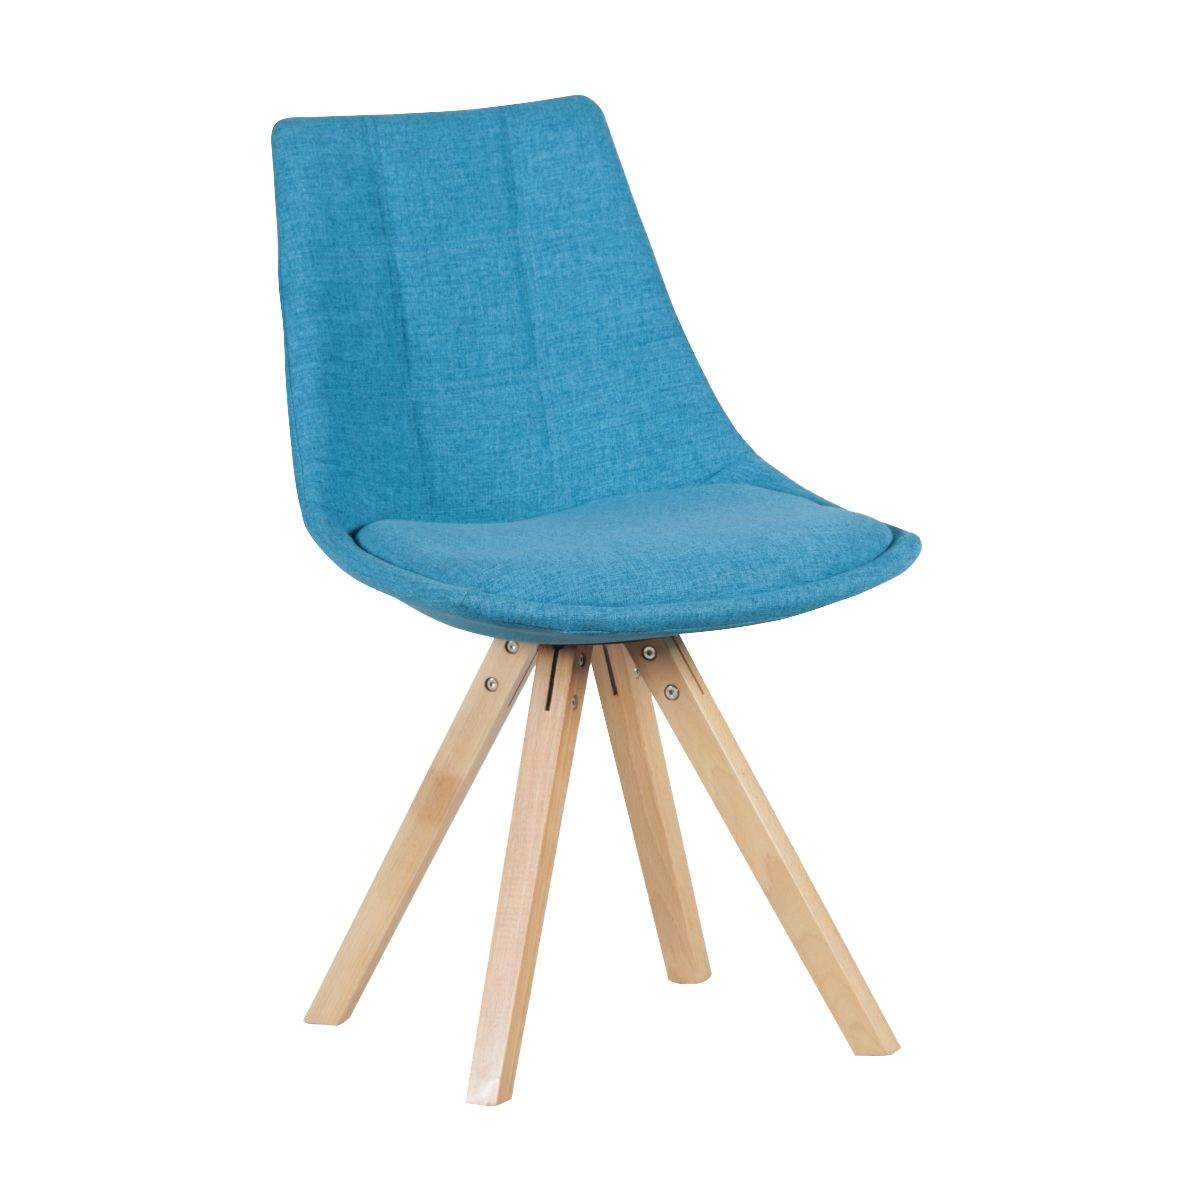 Chaise Bleue Fjord Osez L Alliance Du Style Scandinave Et Du Tissu Ce Modele De Chaise Confortable Grace A Son Assise R Chaise Bleu Chaise Confortable Chaise